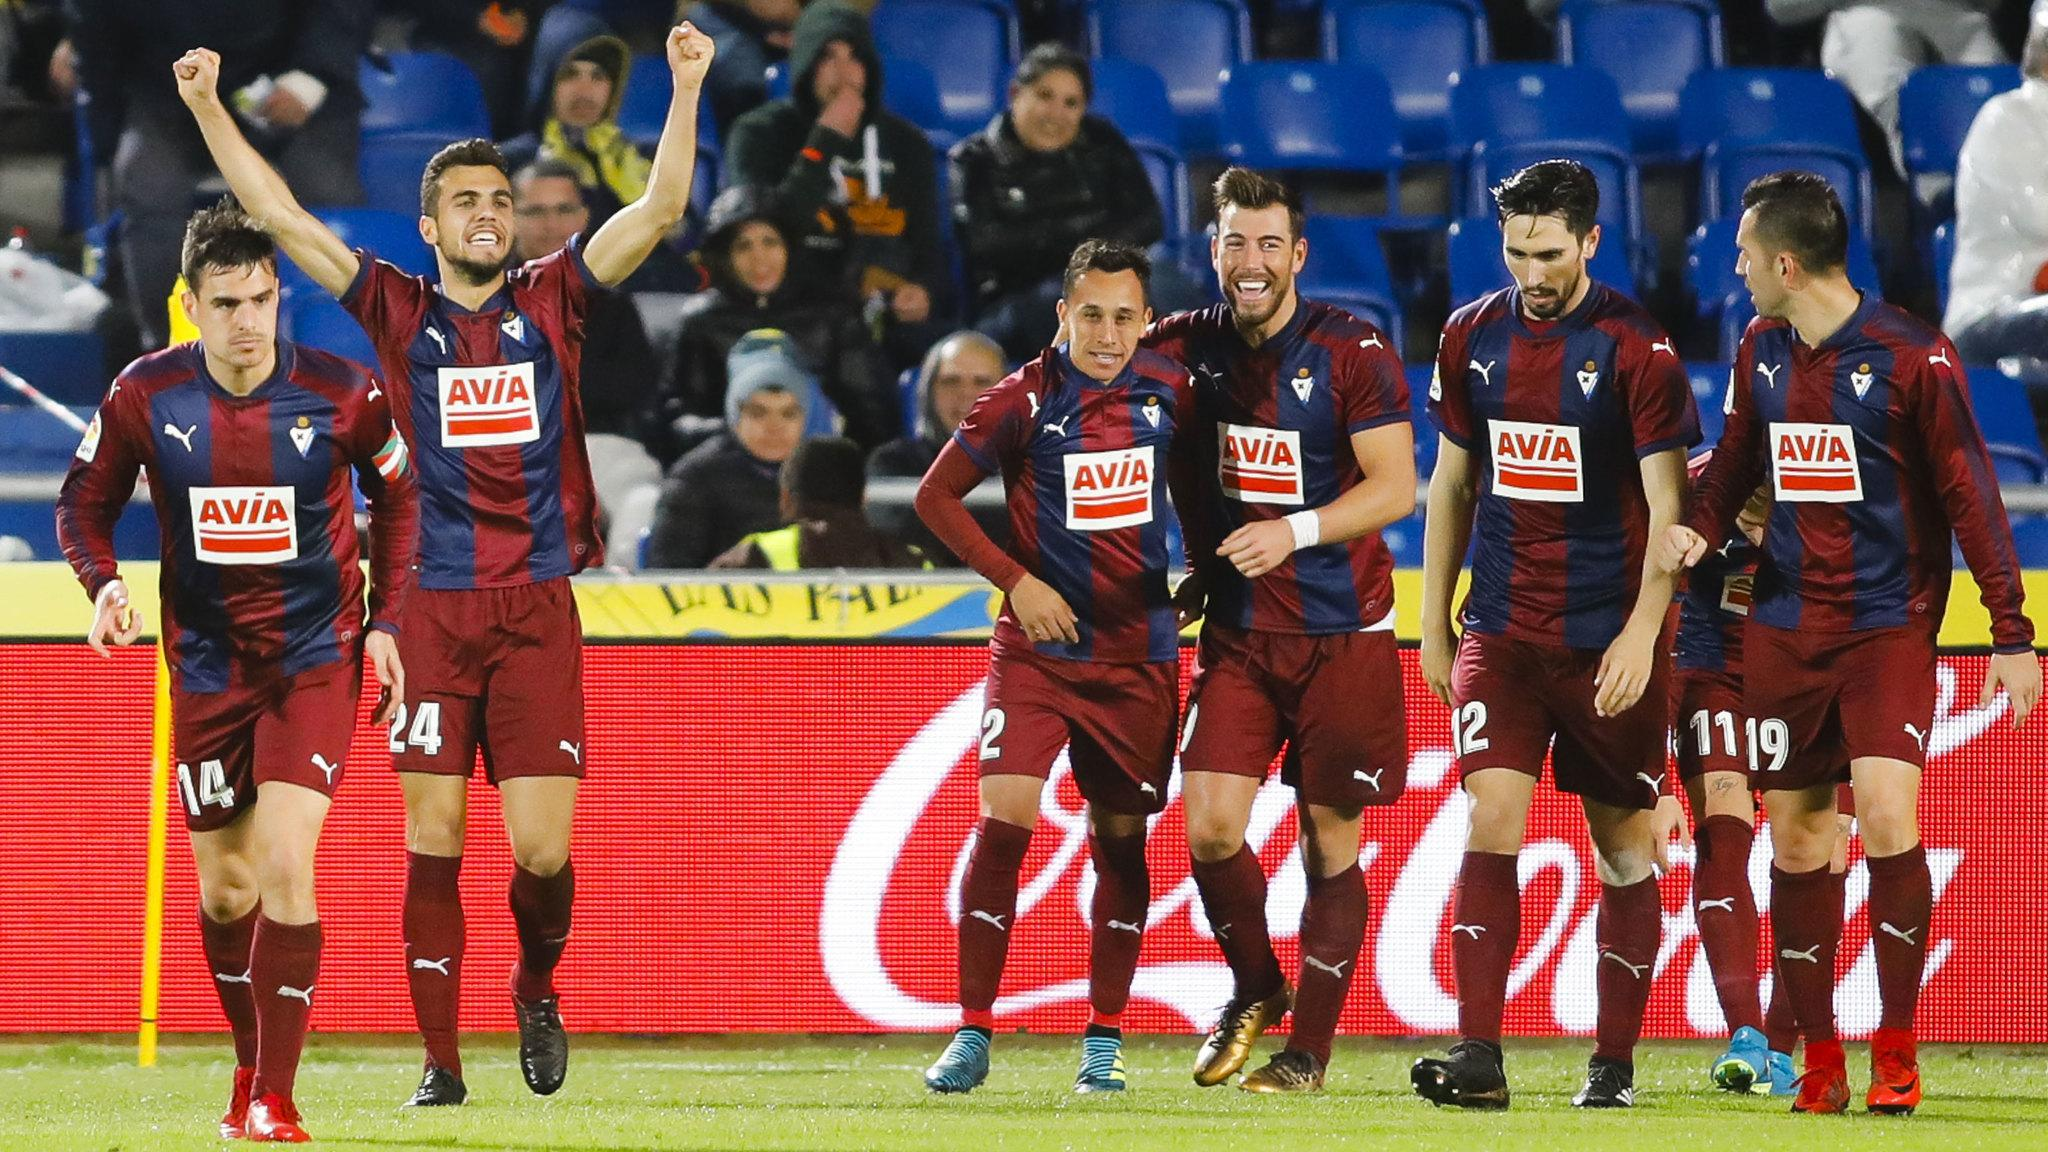 LaLiga: Europe's most in form team is... Eibar!